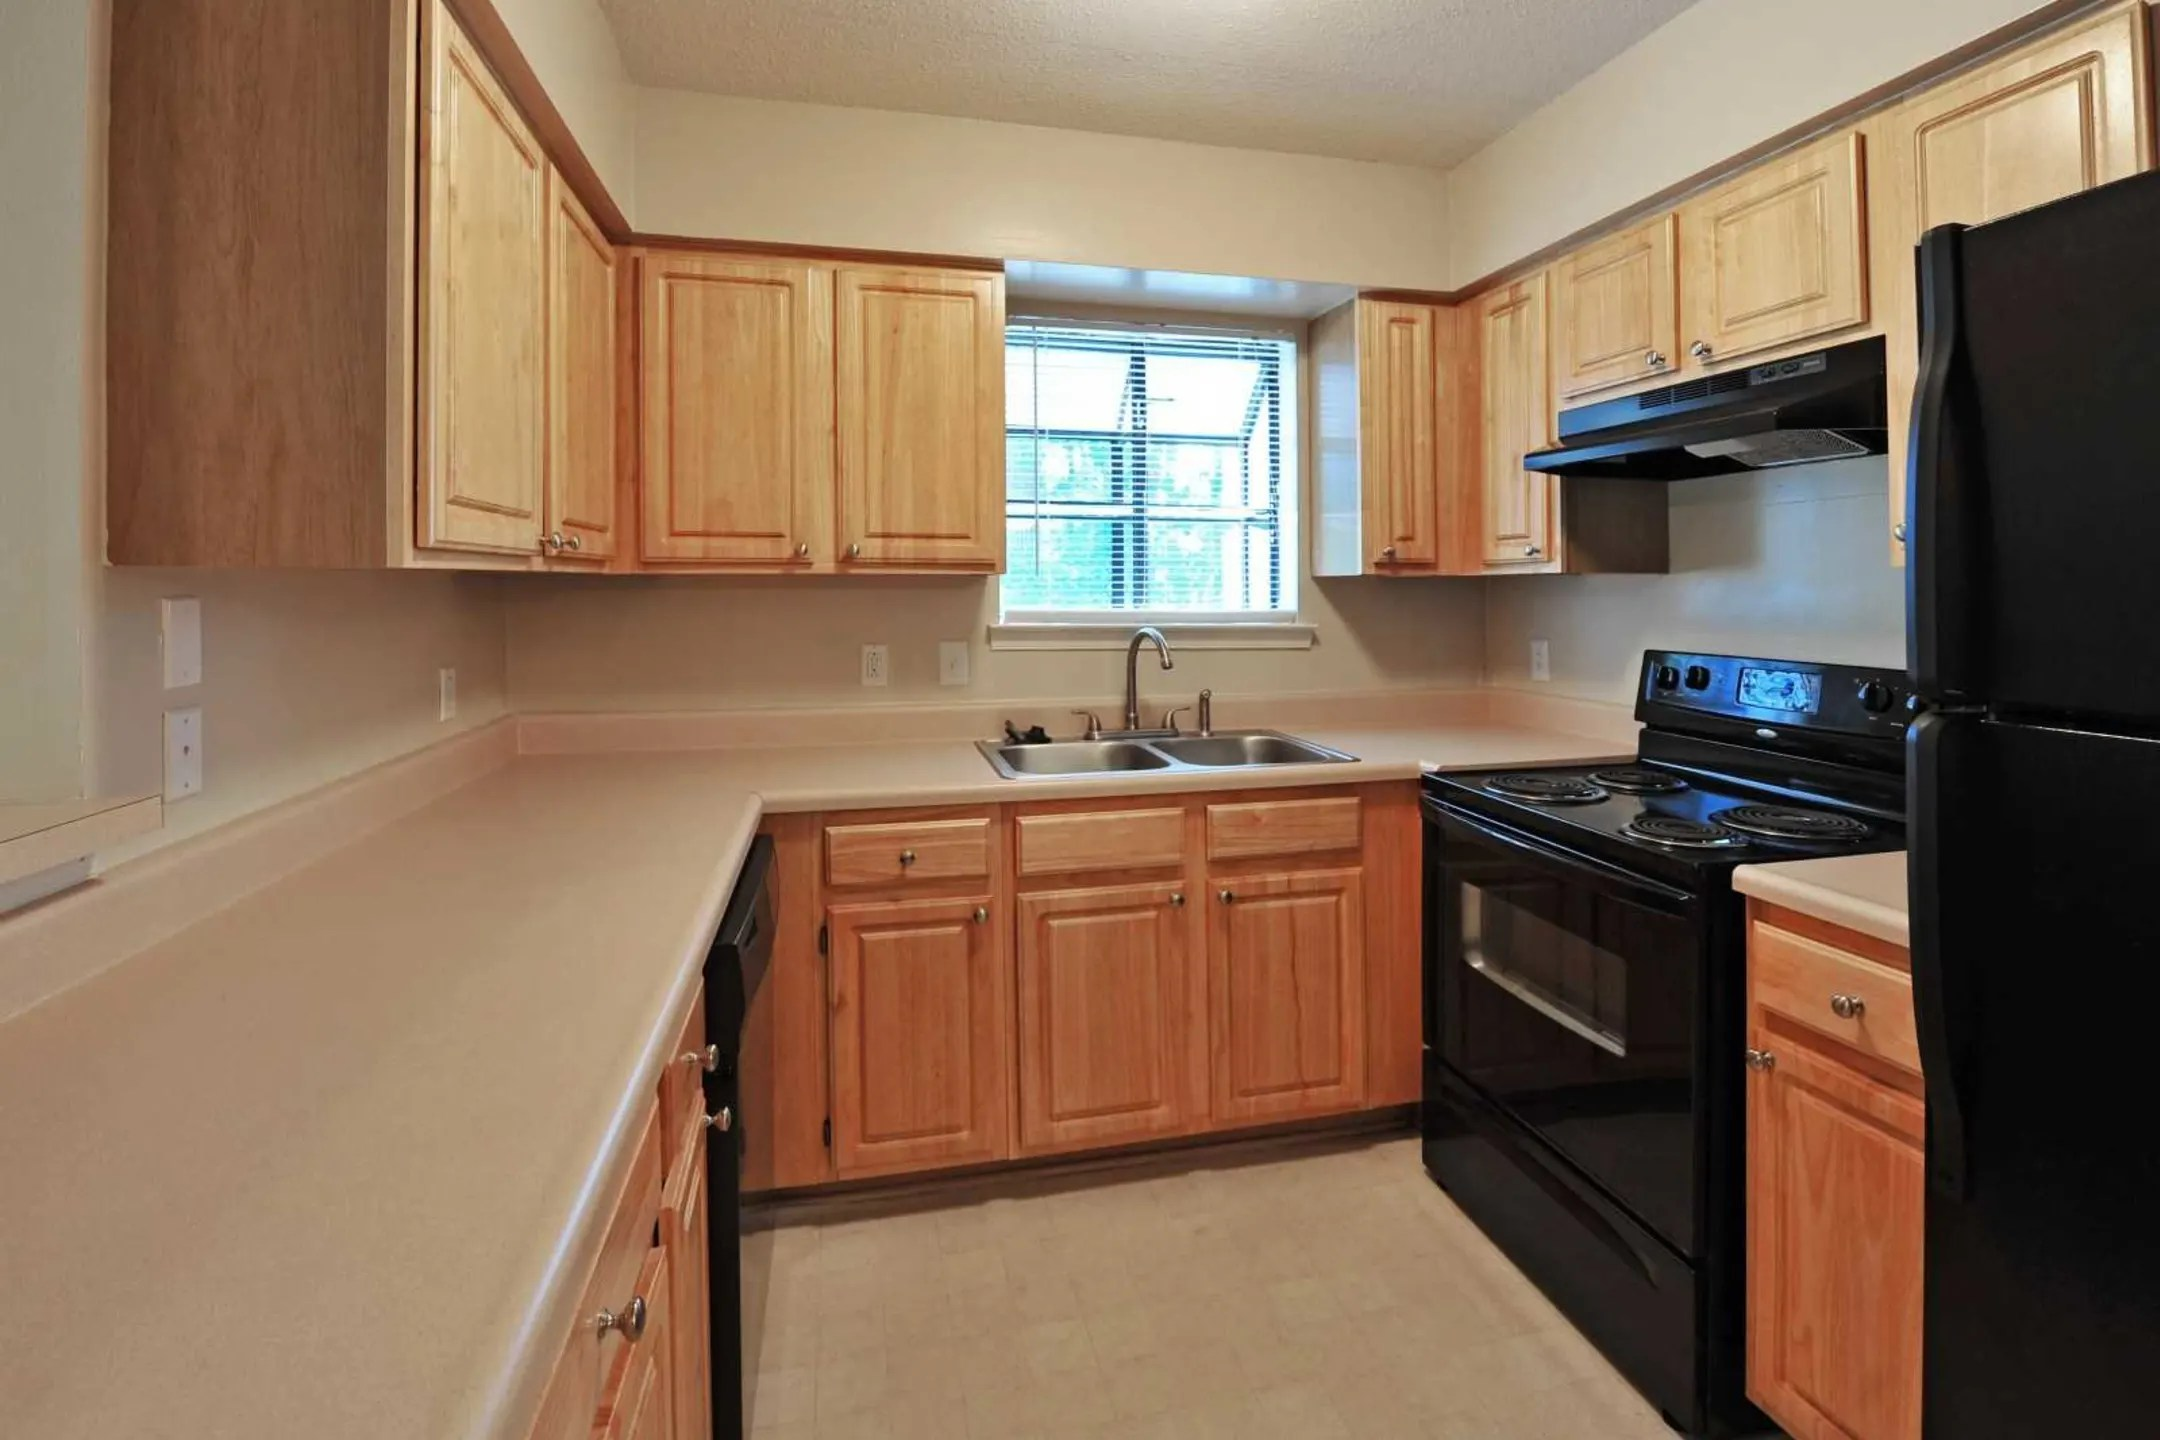 Forest Lake At Oyster Point Apartments  Newport News VA 23606